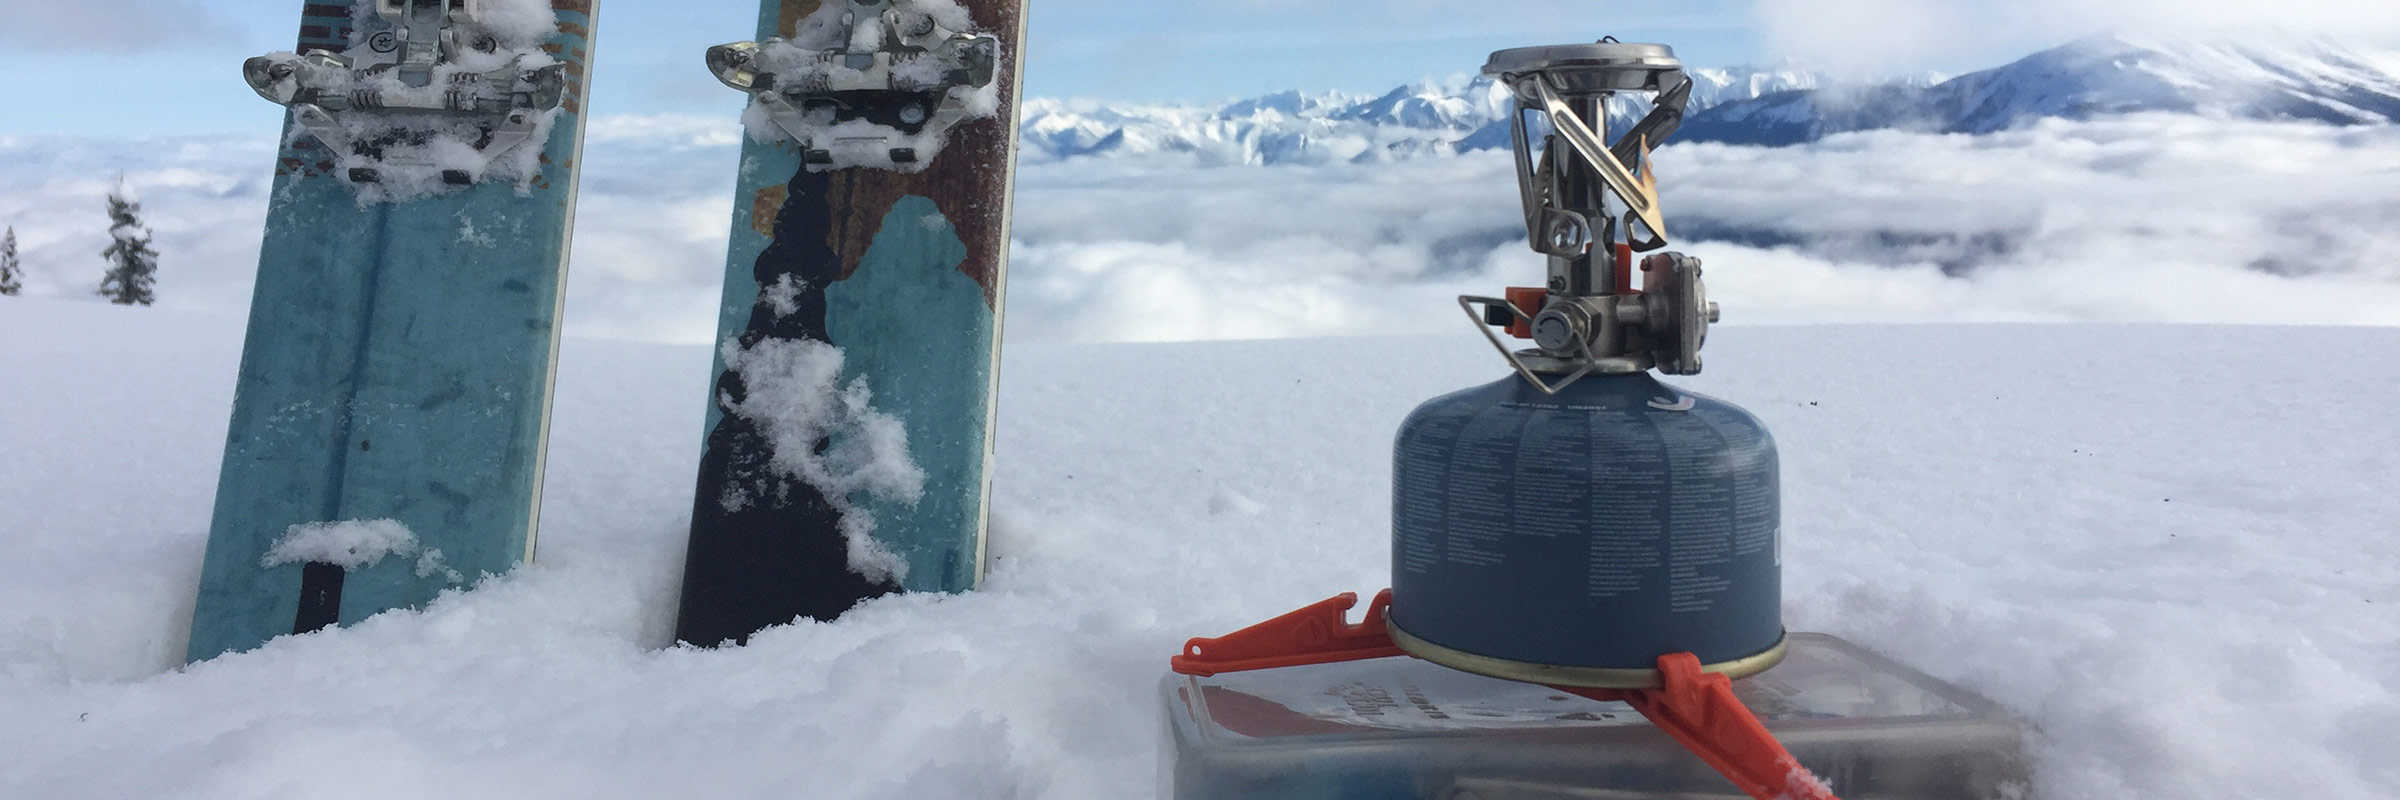 Jetboil. JetBoil MightyMo Stove Review